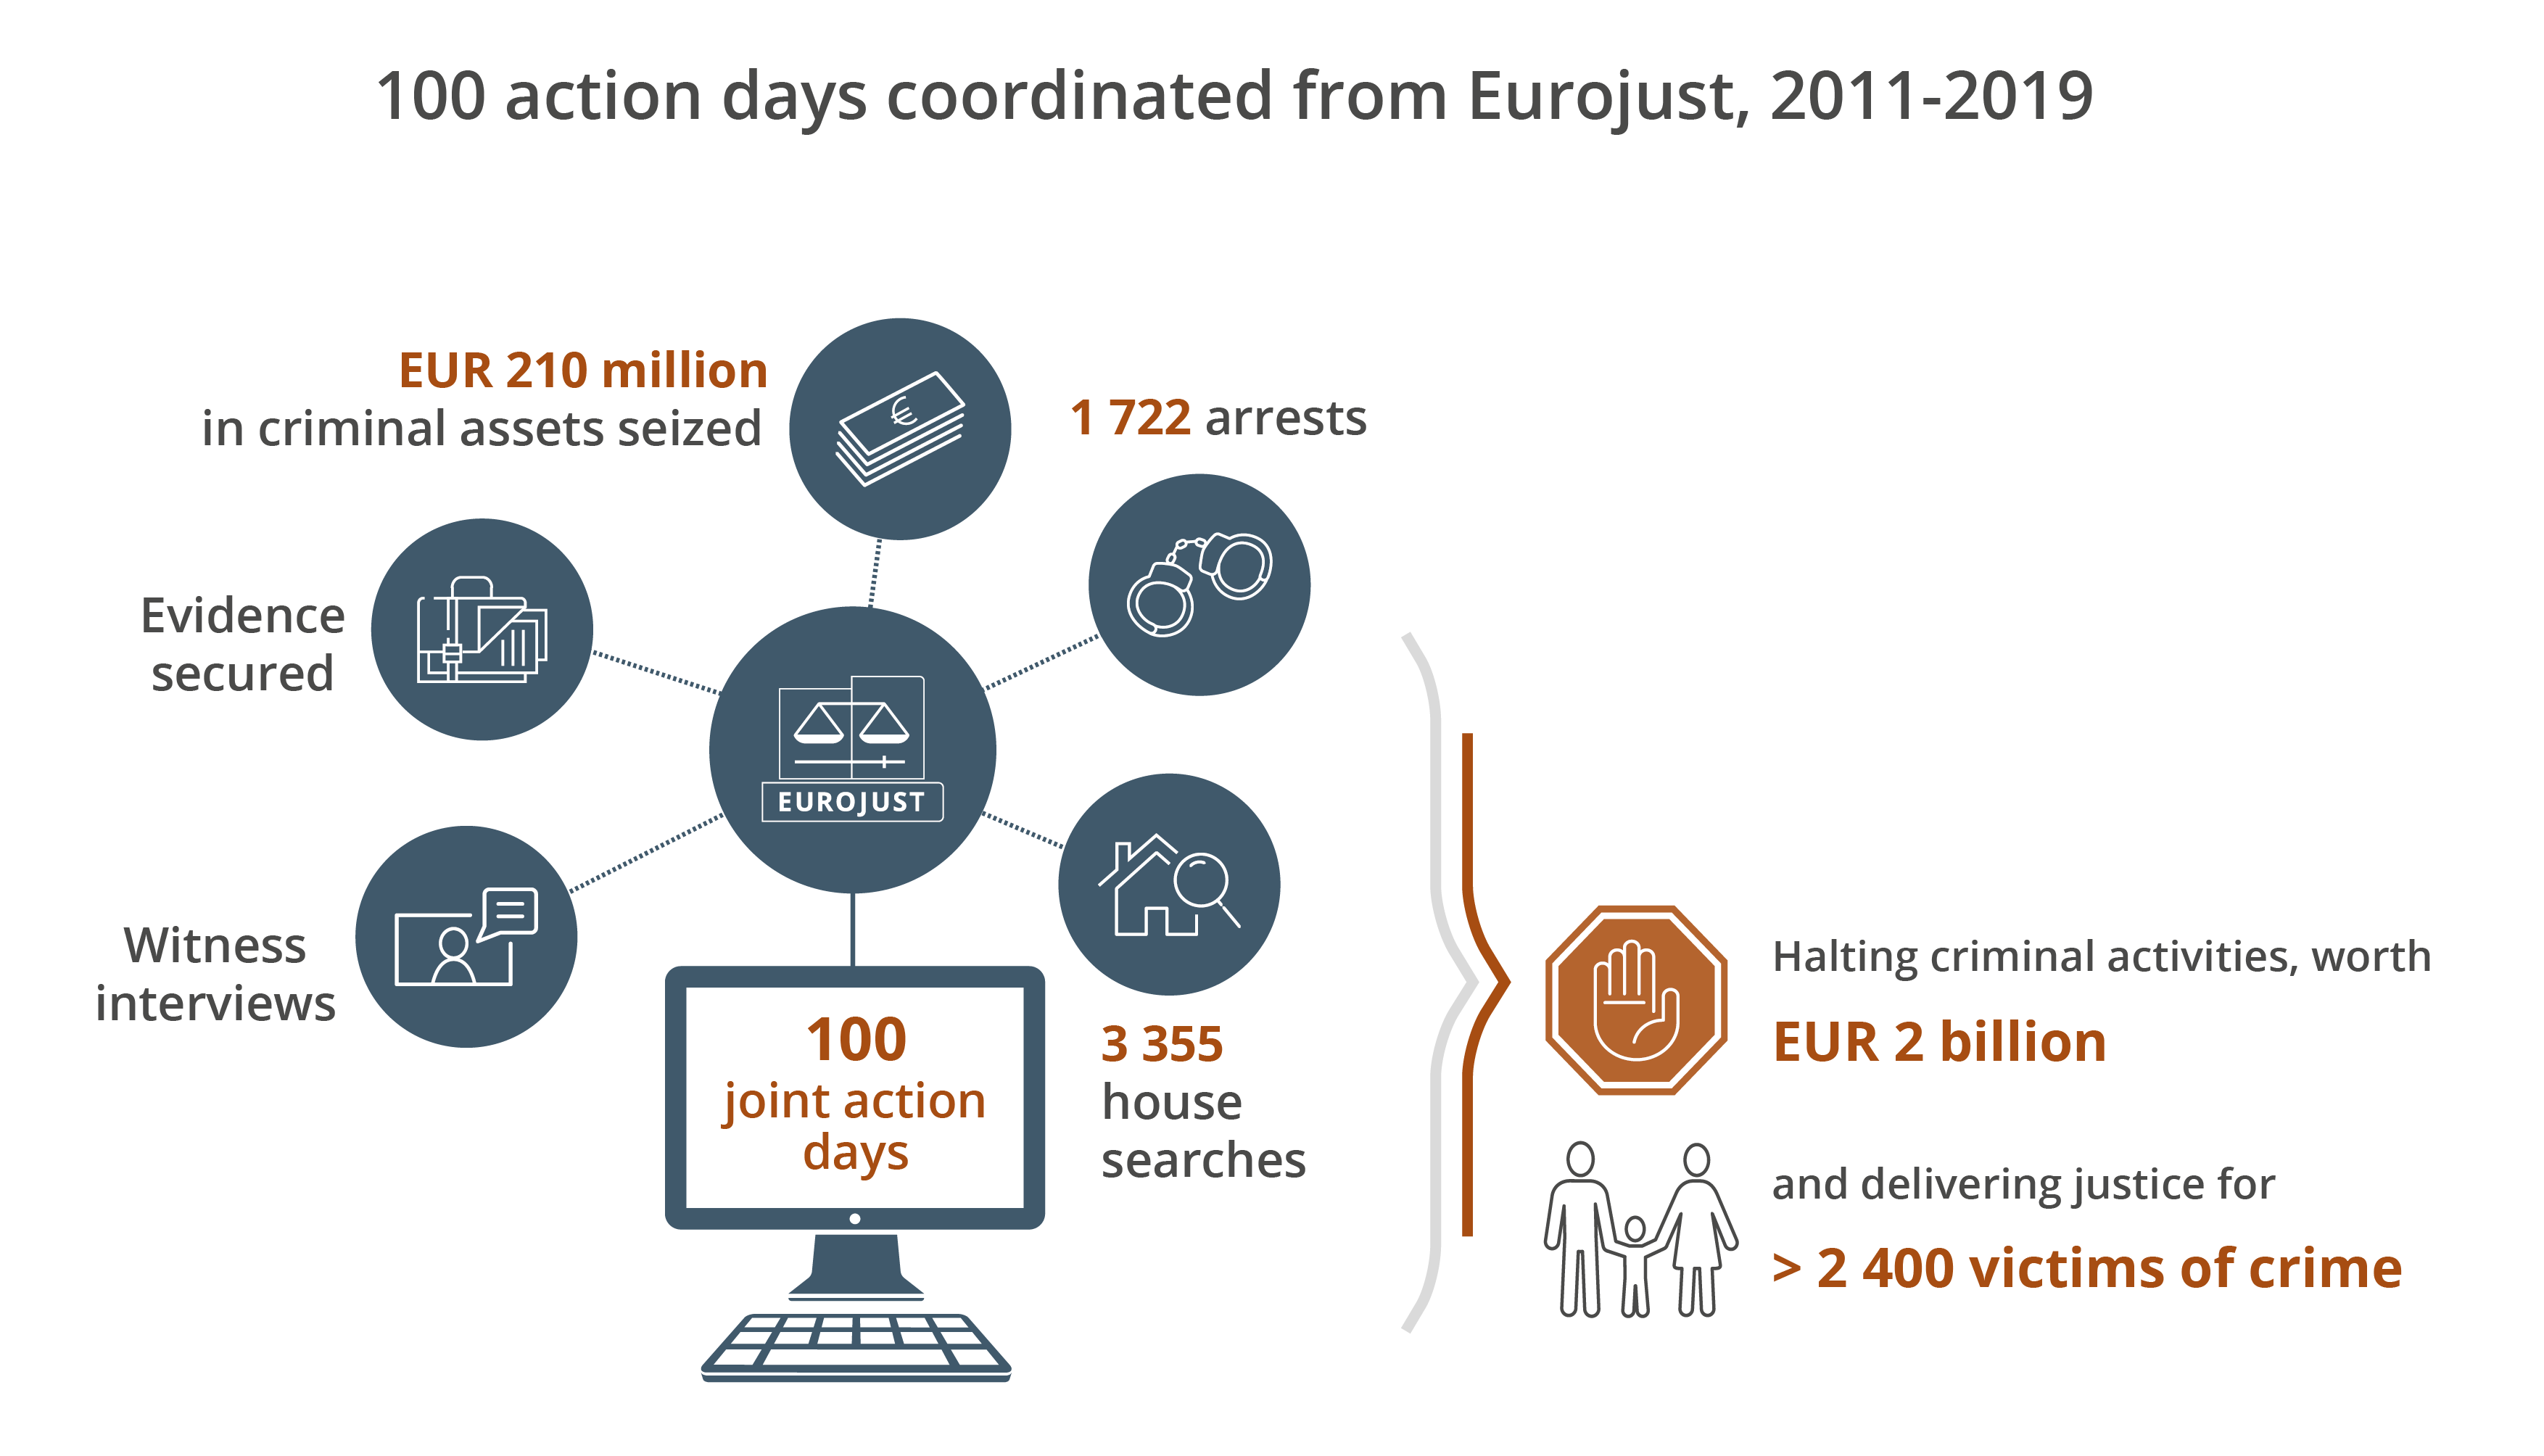 100 coordination centres at Eurojust since 2011